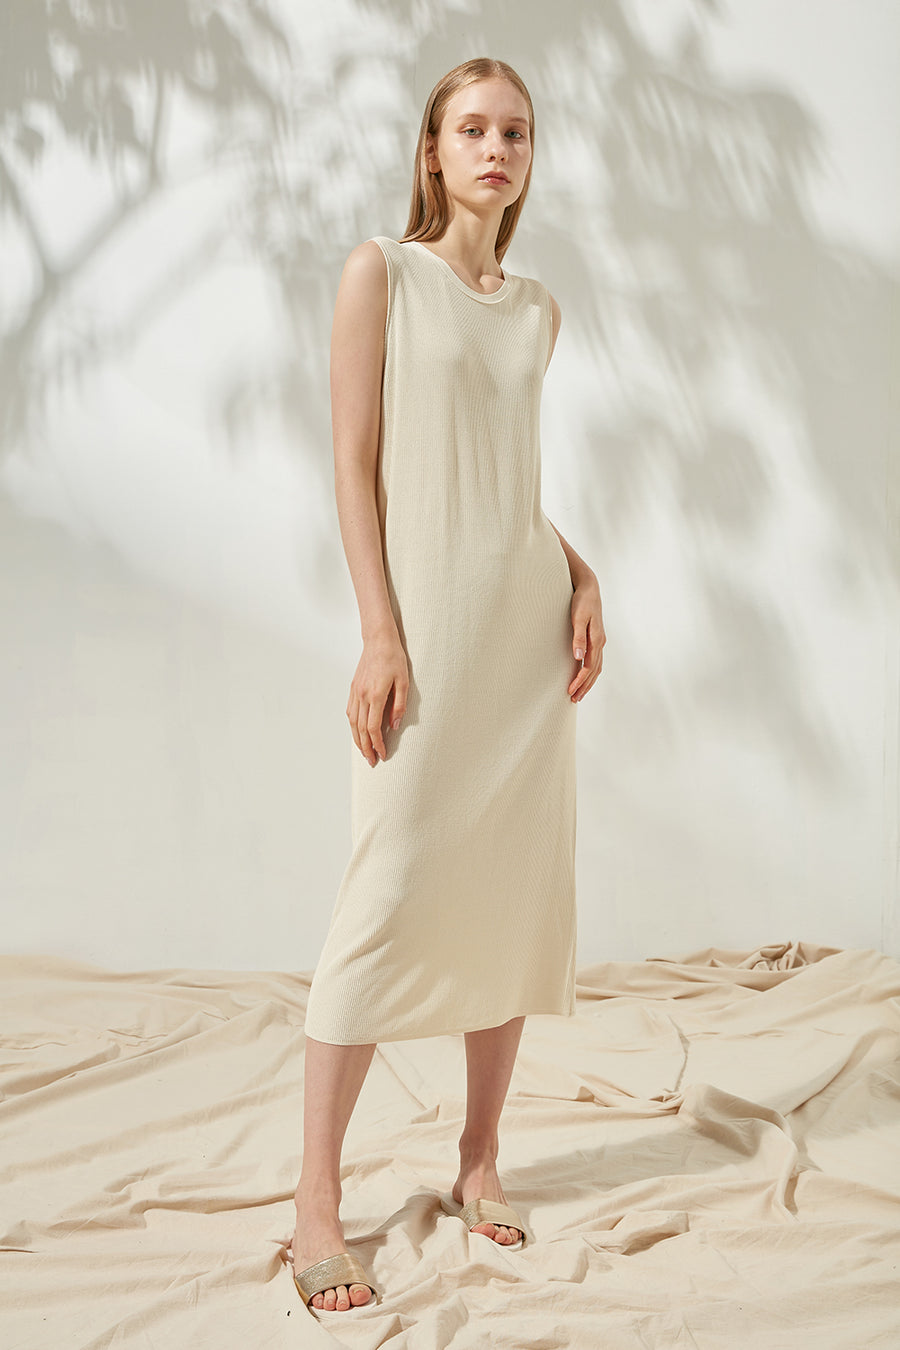 Fine-gauge ribbed dress - Zelle Studio